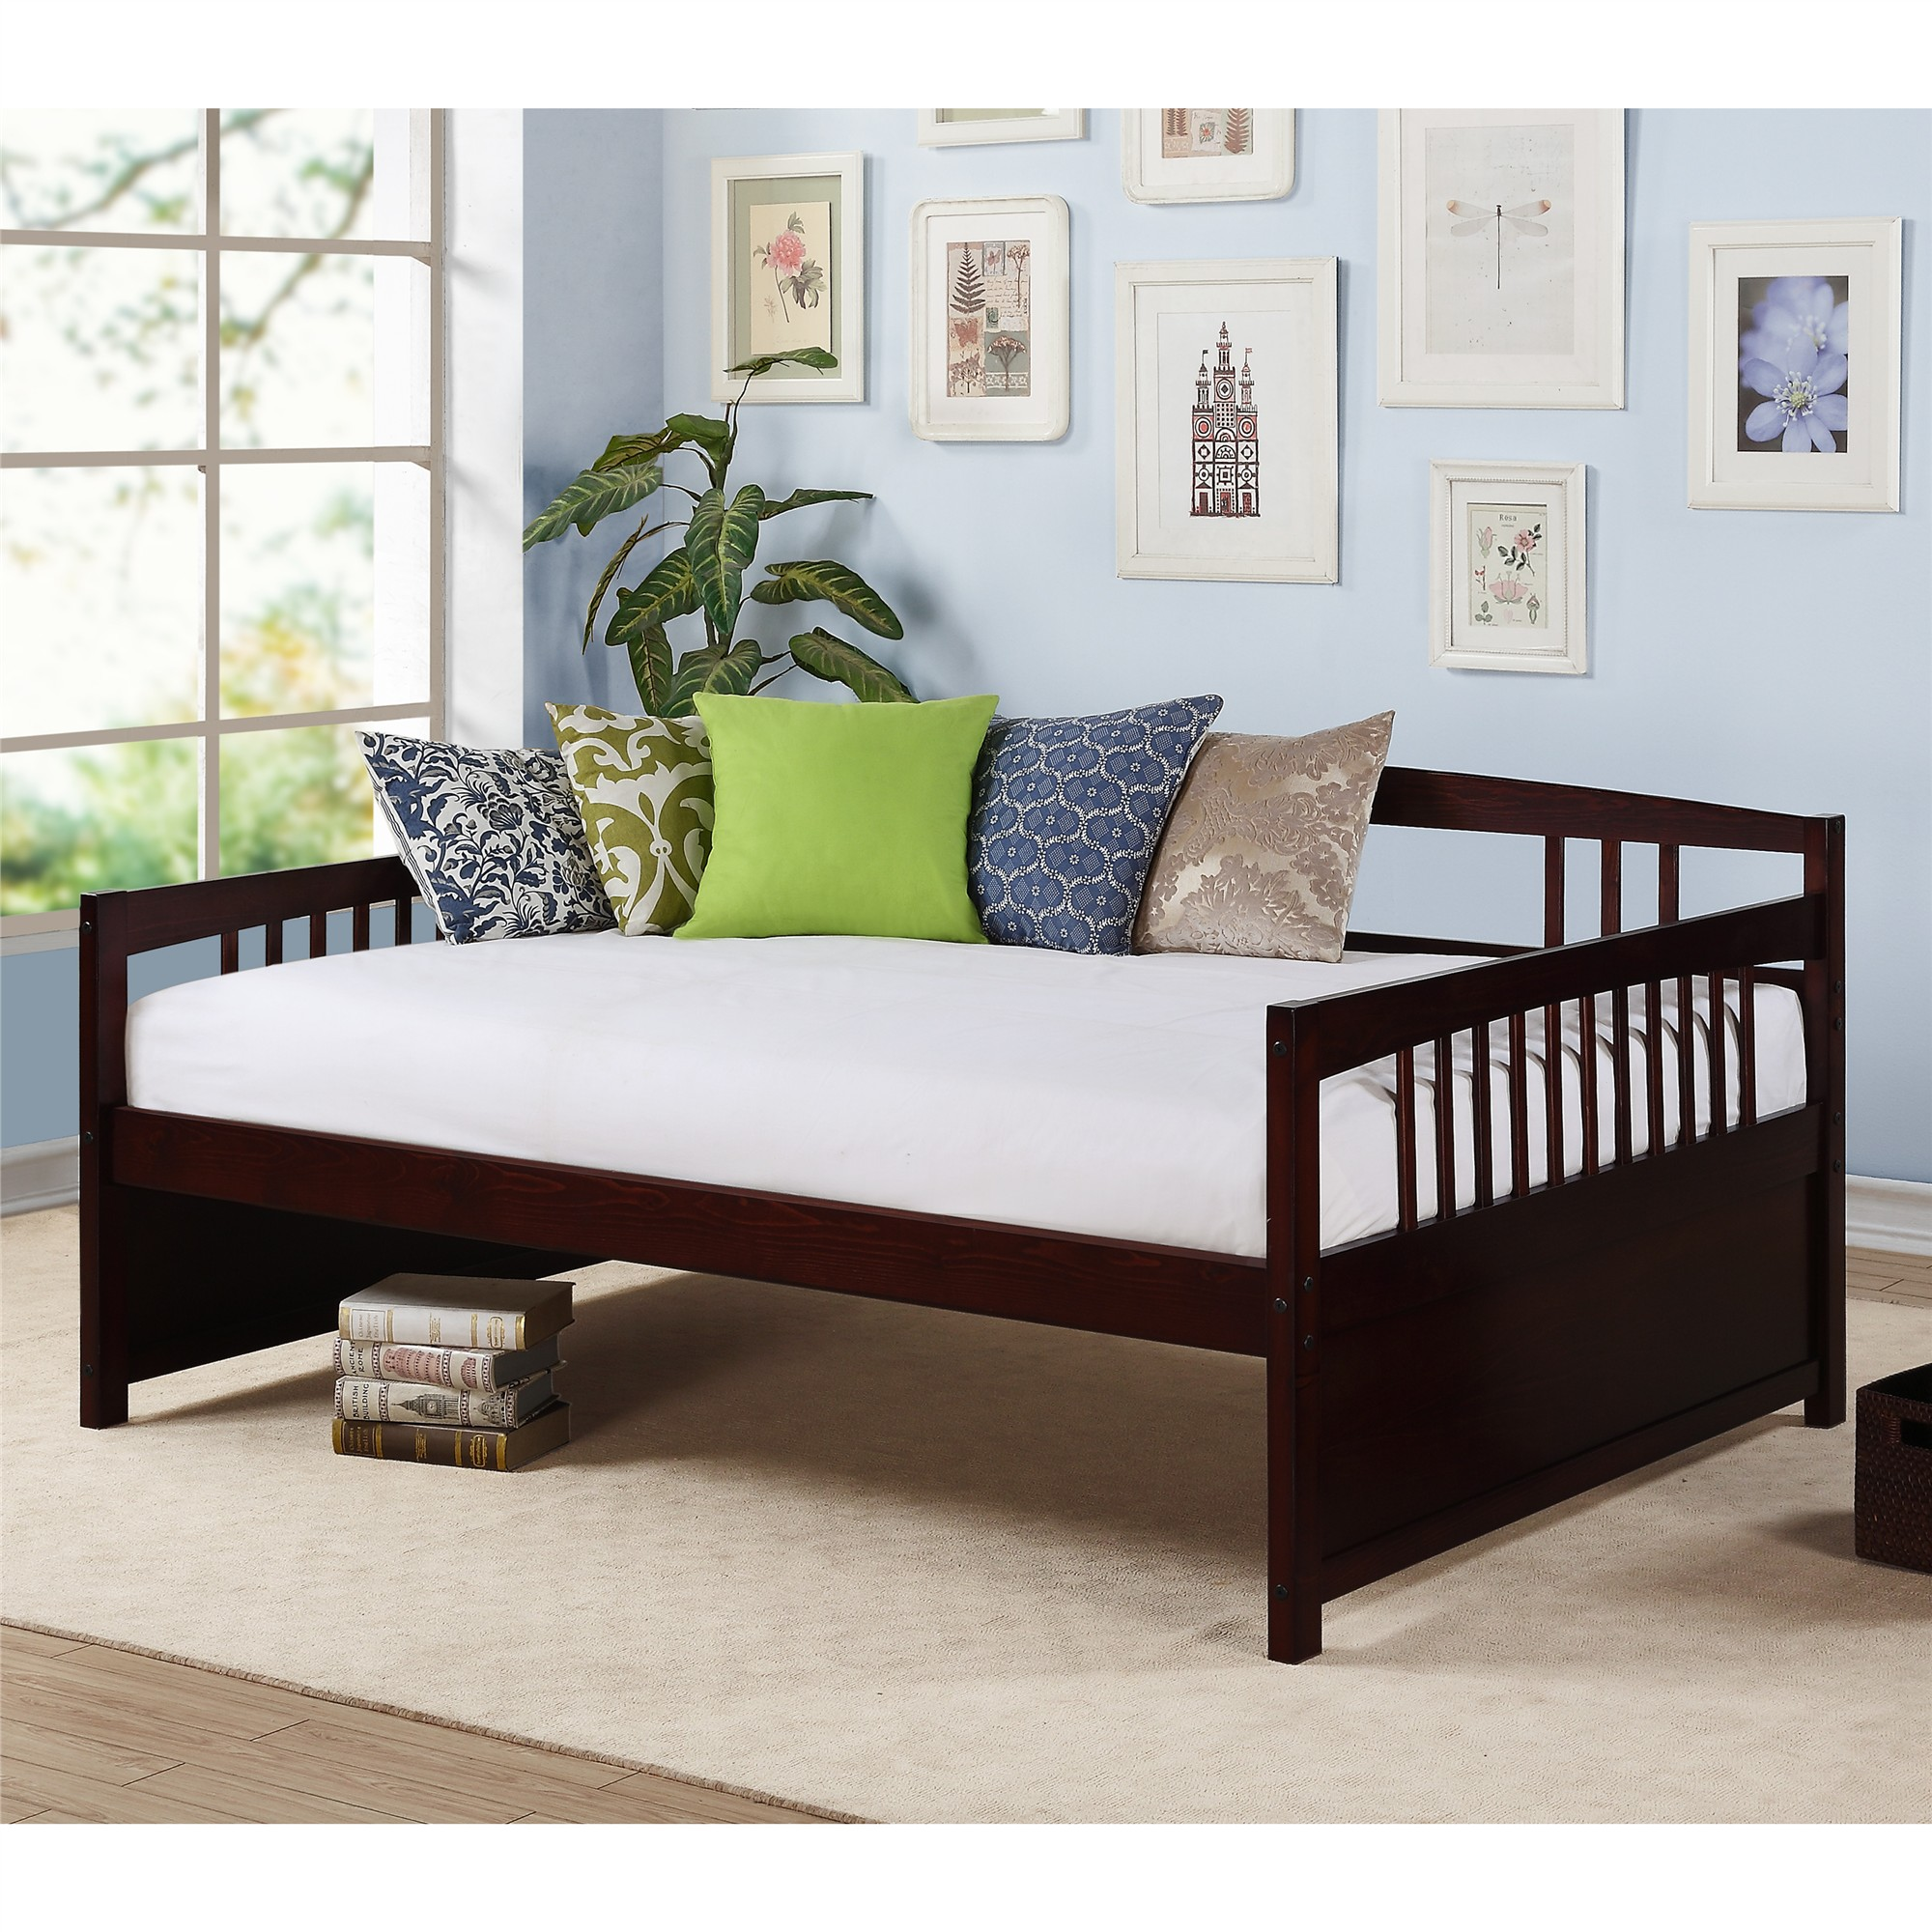 Full Size Daybeds for Adults | Full Daybed | Daybed with Trundle Full Size